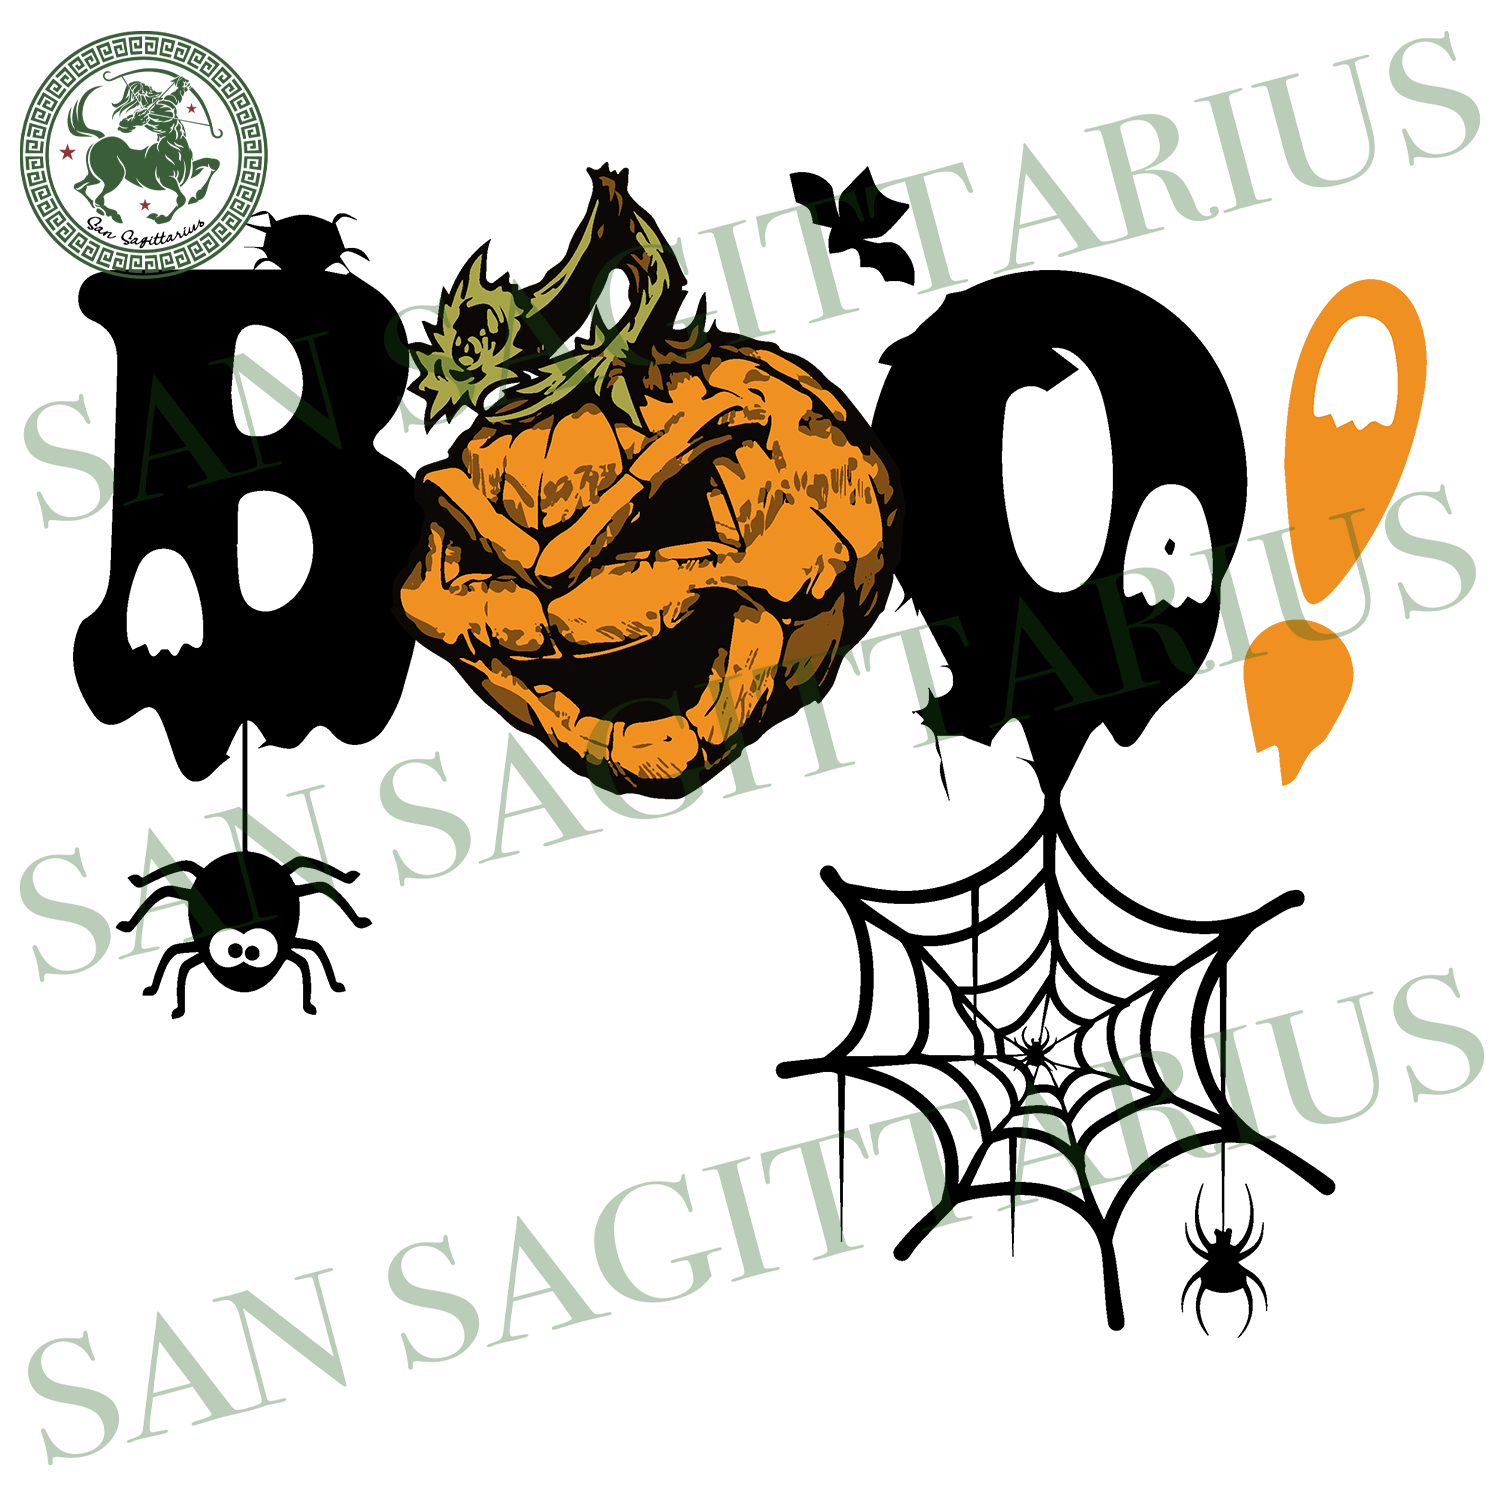 Boos, Halloween Svg, Boos Svg, Pumpkin Svg, Spider Svg, Baby Spider, Halloween Spider, Cute Pumpkin, Happy Halloween, Halloween Party, Halloween Shirt, Boos, Baby Boo, Boo Shirt, Boo Gift, Ni